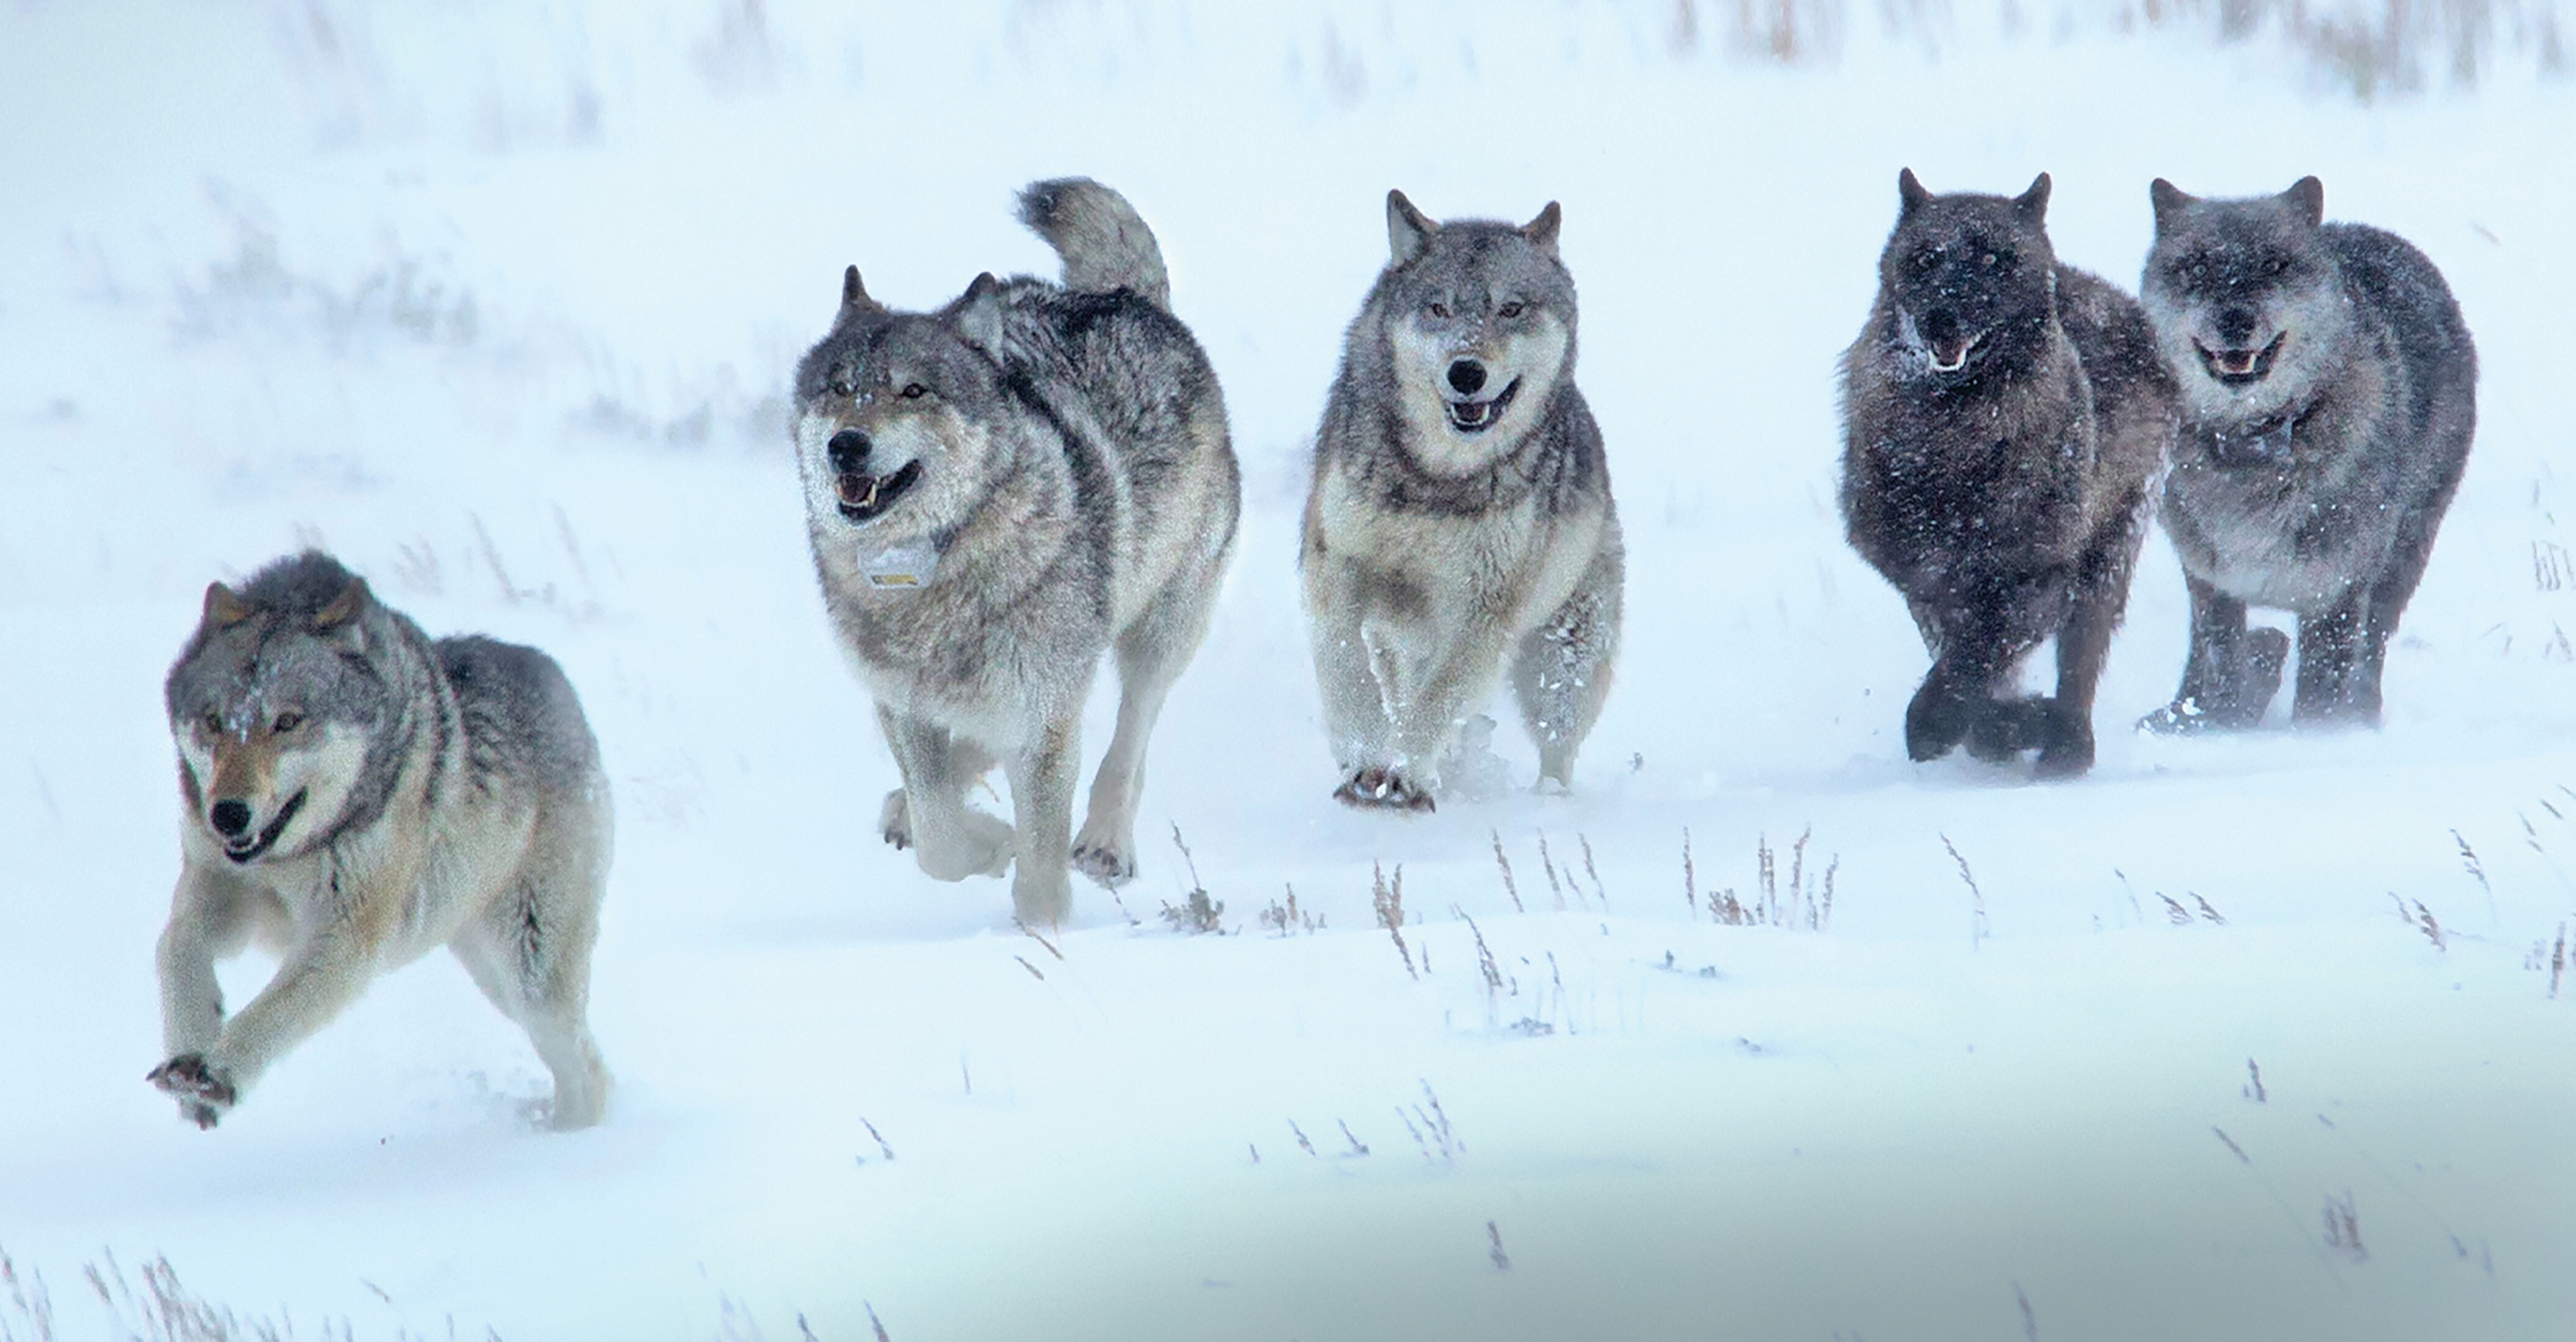 Yellowstone Wolves & Wildlife: A Photo Pro Expedition